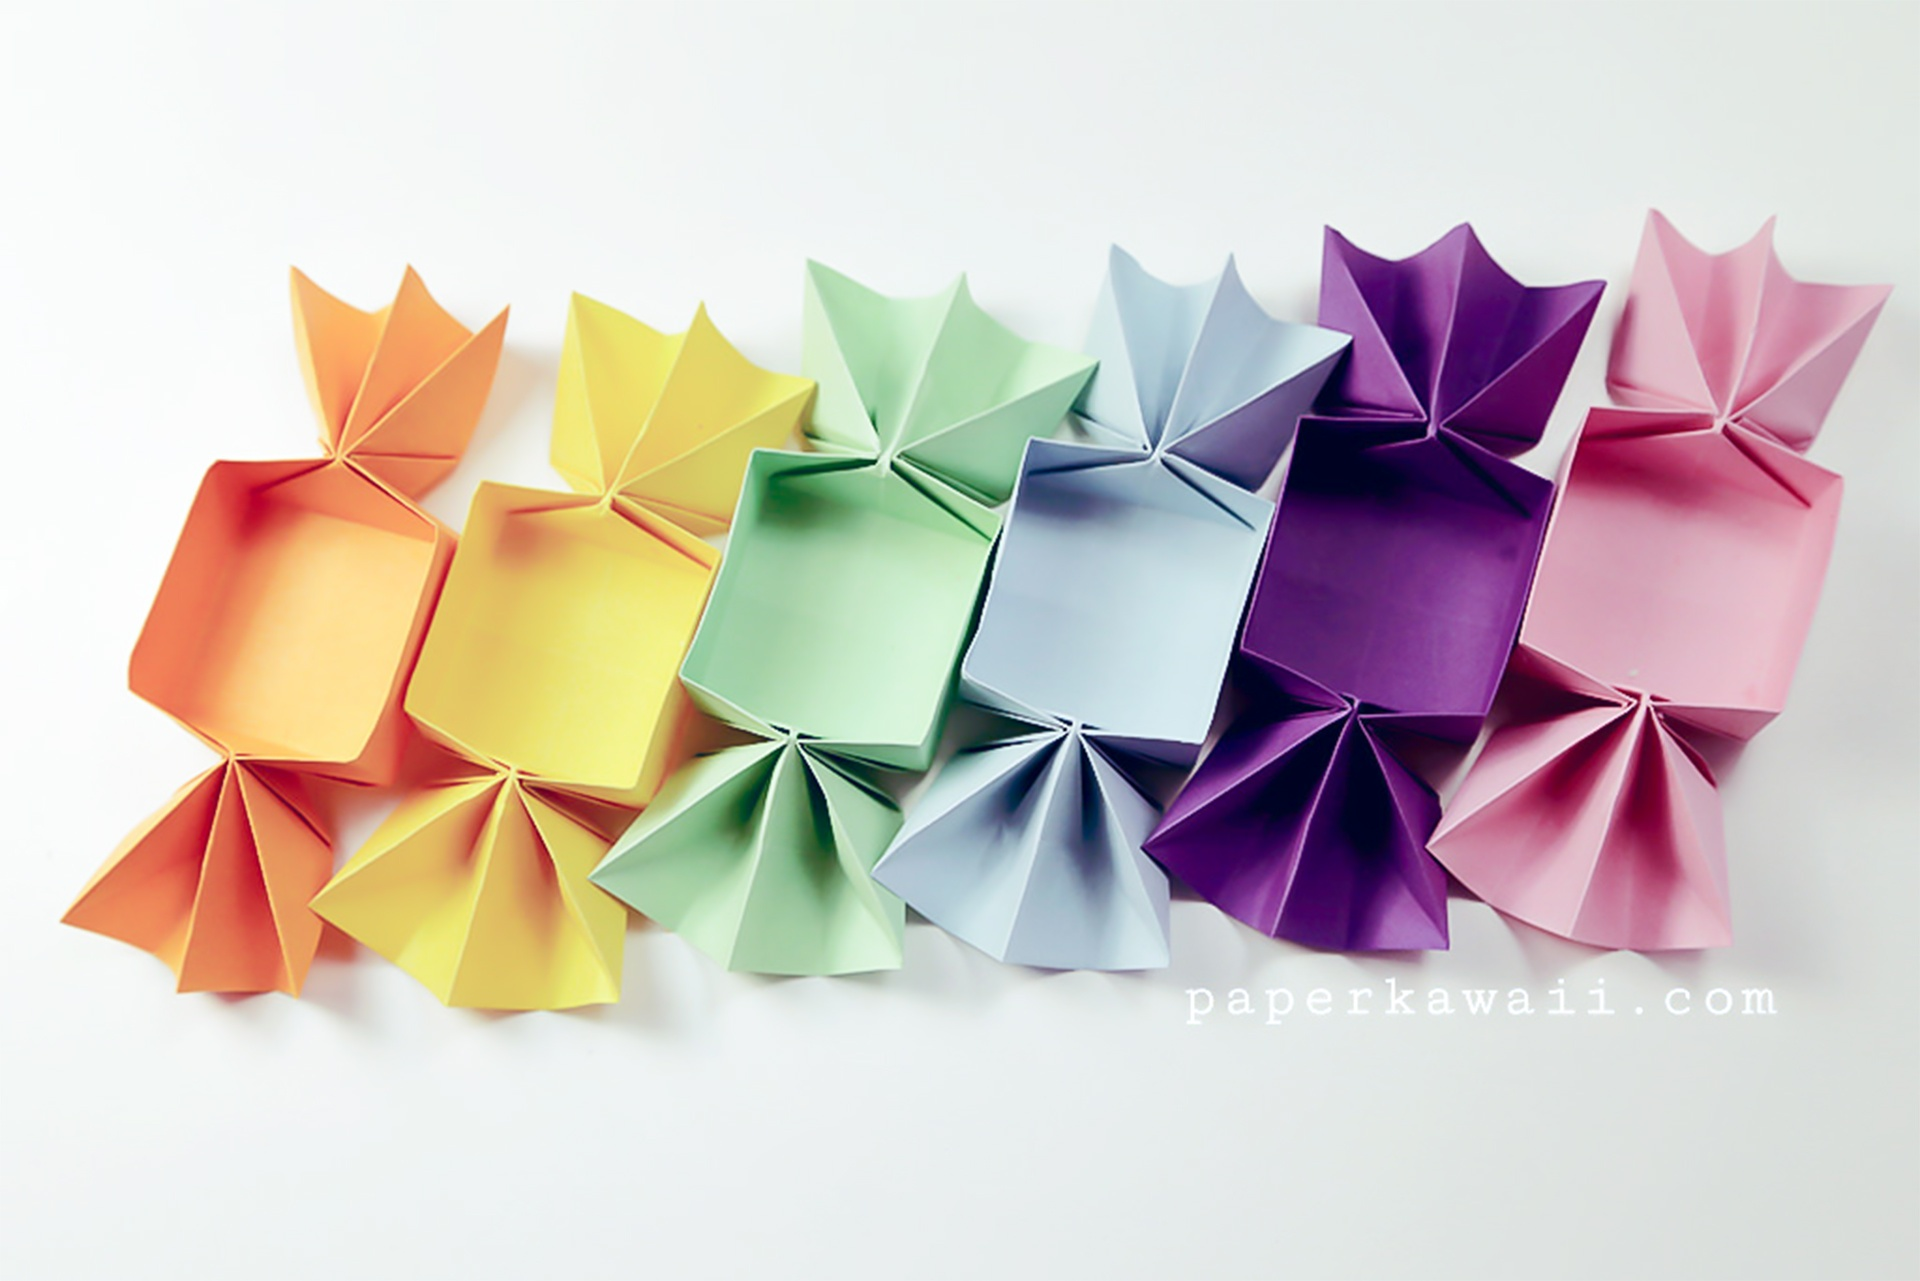 12 Point Flower Tower (Design by Chris K. Palmer) | OrigamiAncy | 1281x1920